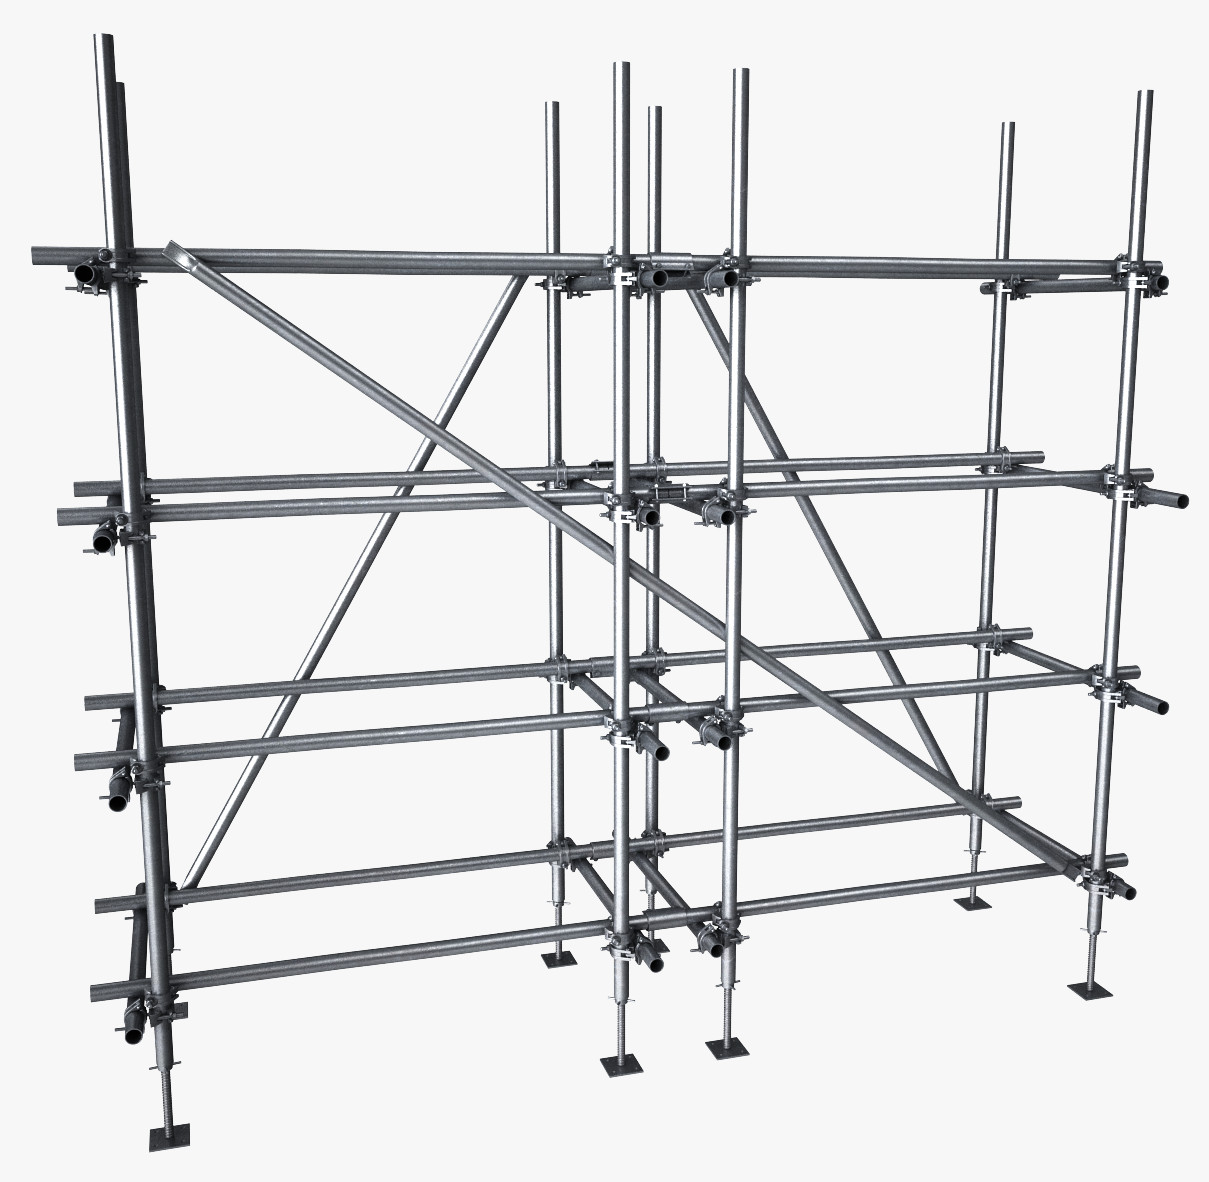 what attention shall be paid to when buying welded scaffolding tubes